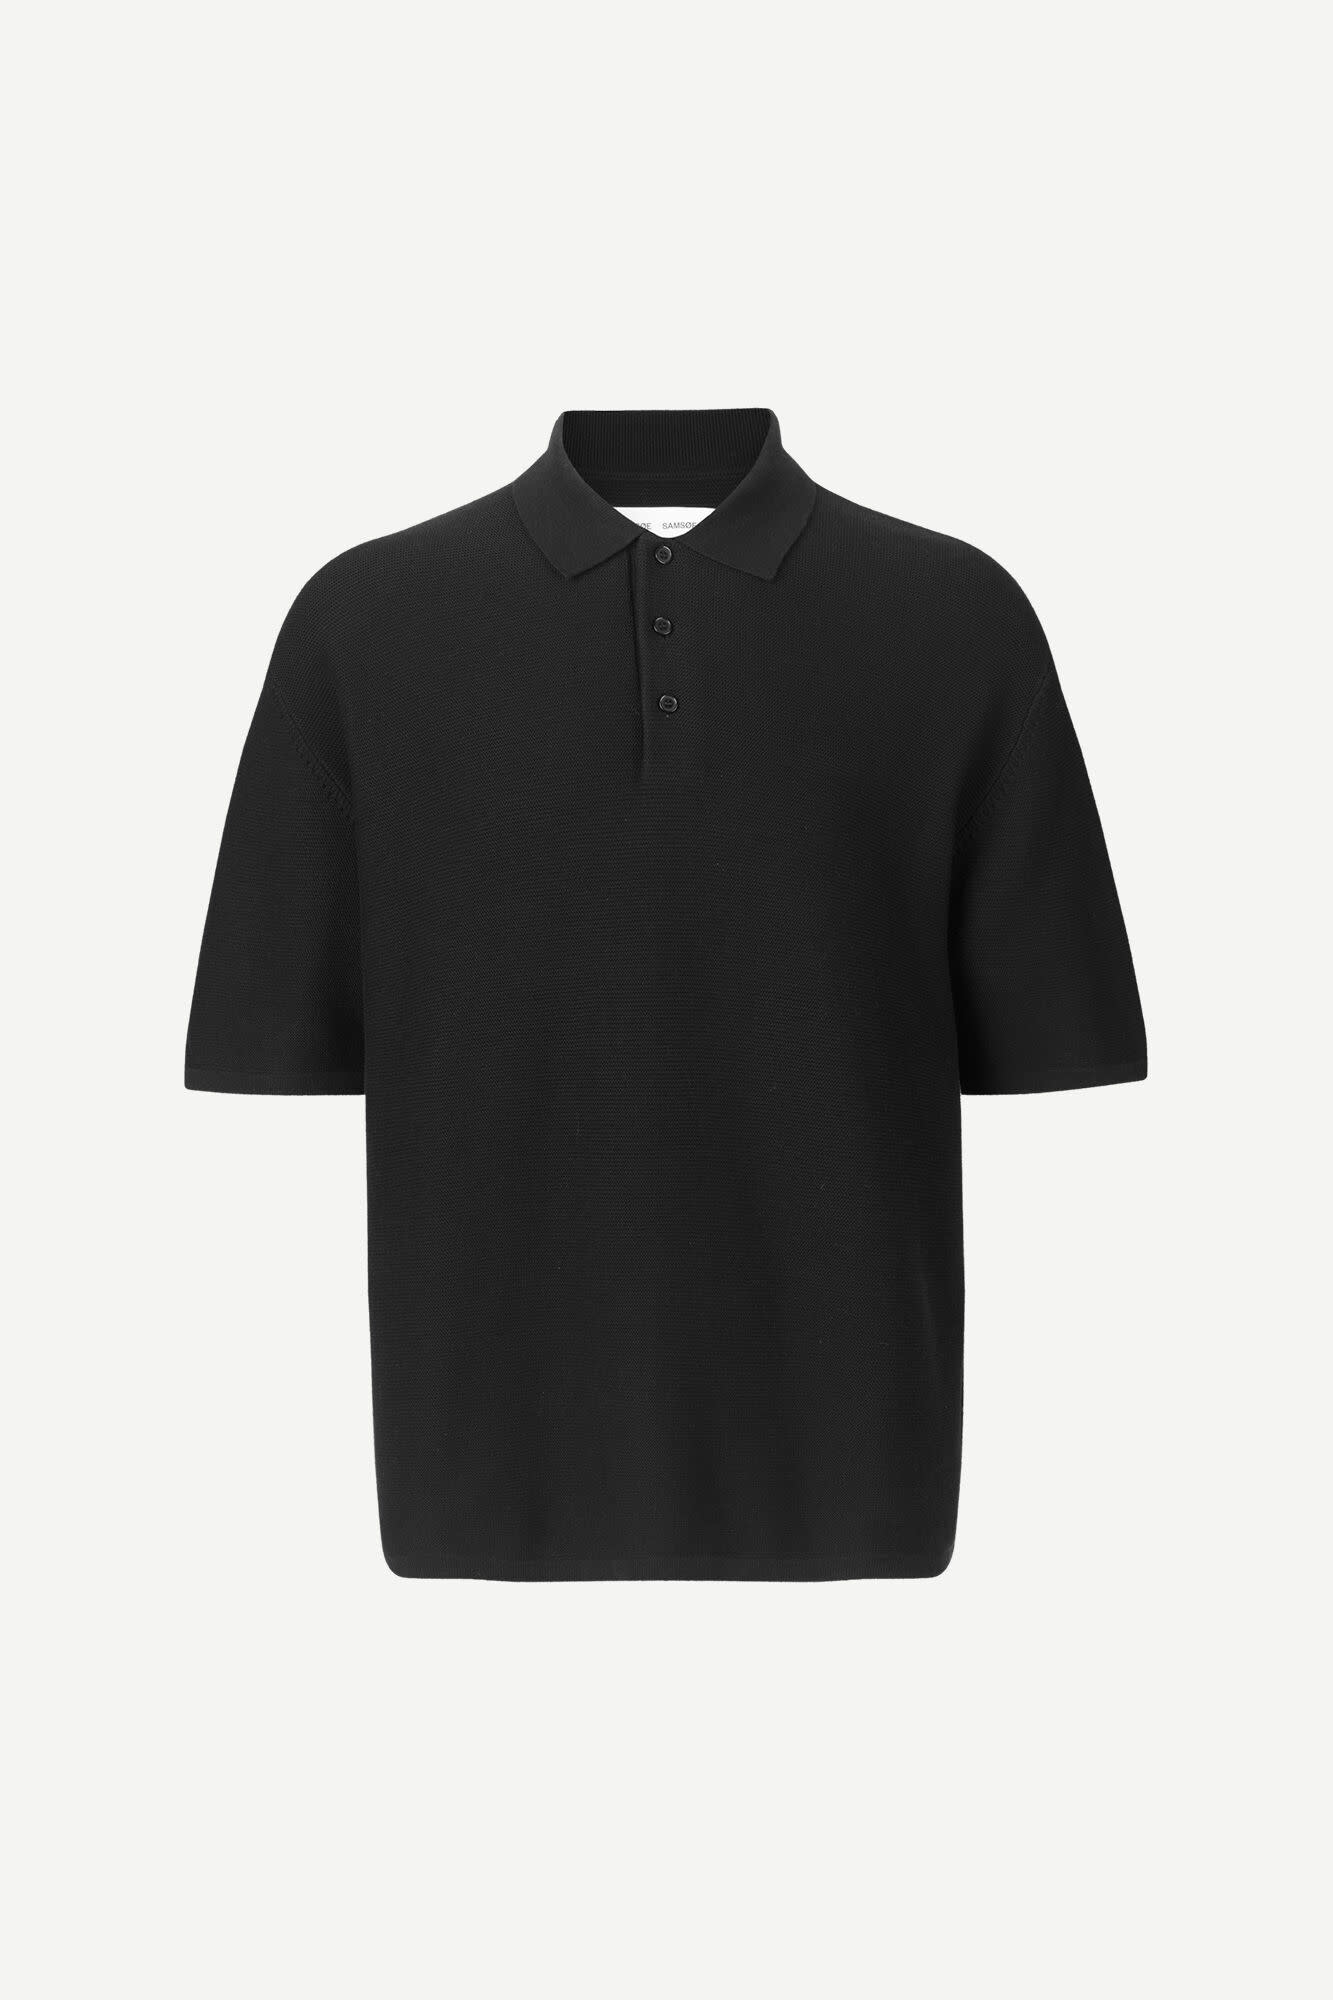 Leon Oversized Polo Black Knitted-1